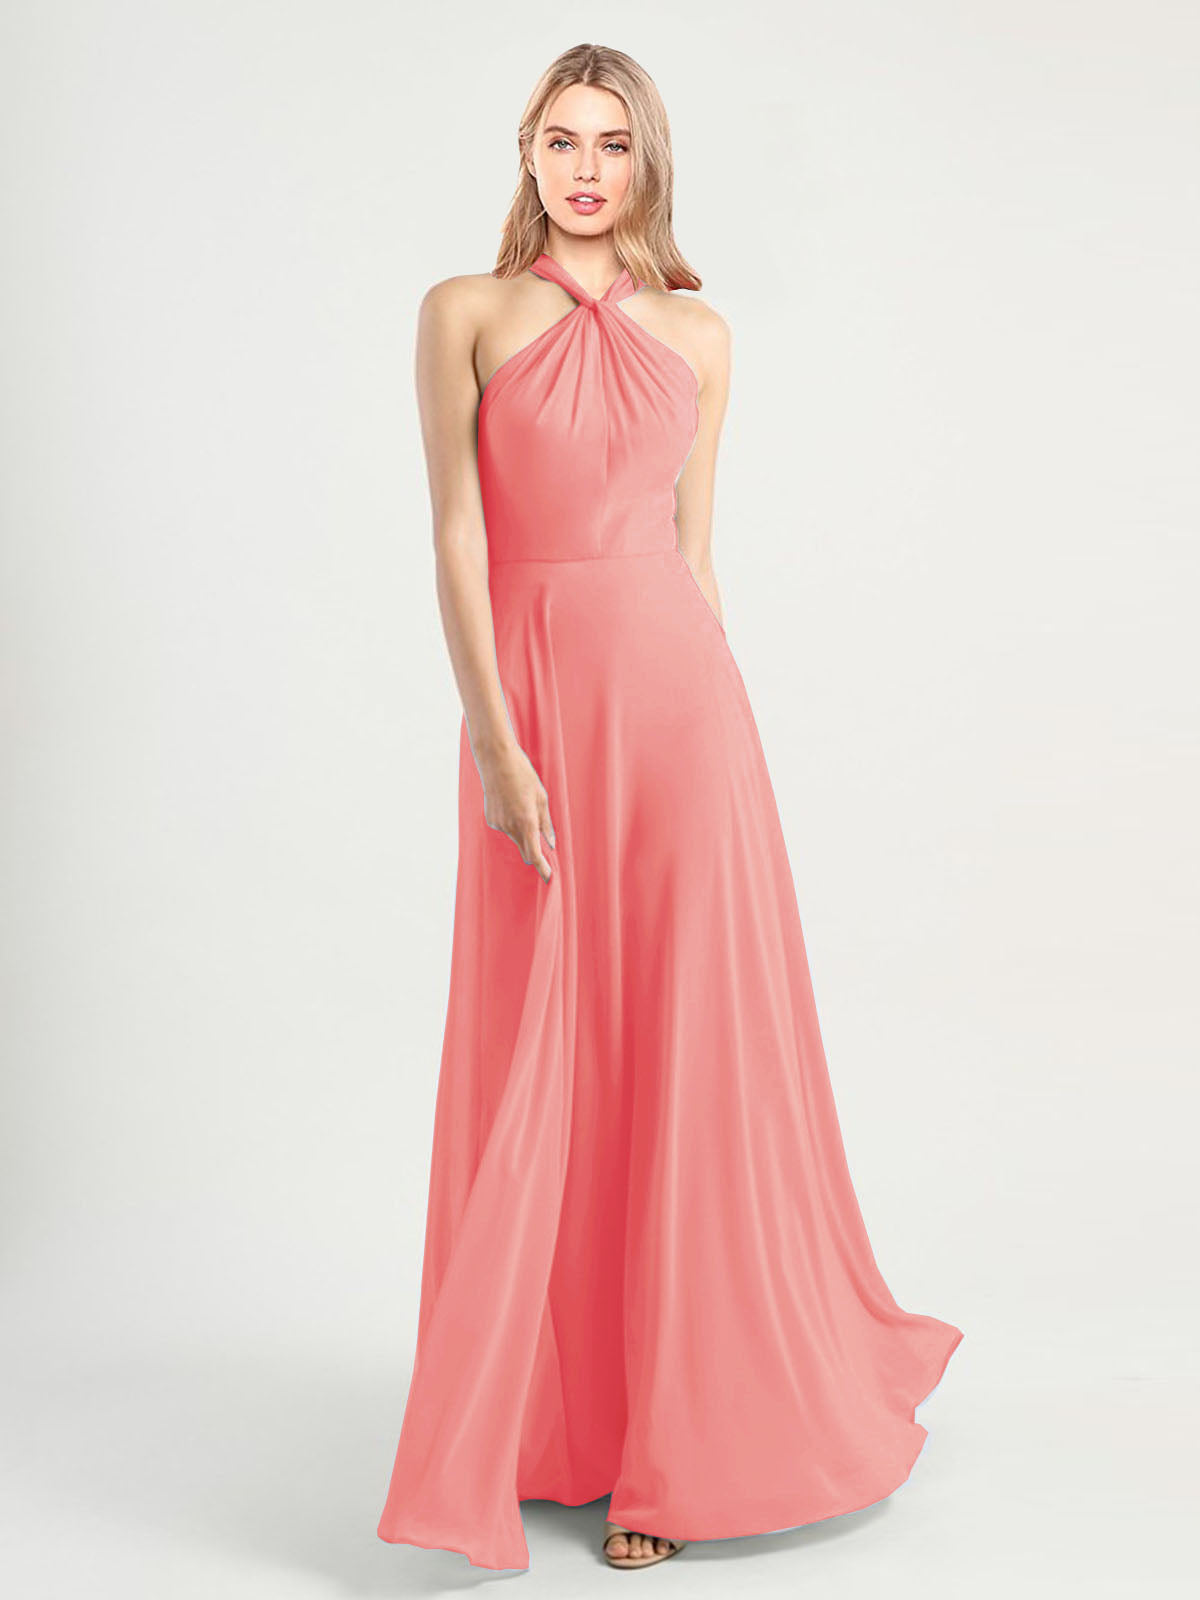 Long A-Line High Neck, Halter Sleeveless Watermelon Chiffon Bridesmaid Dress Yoli